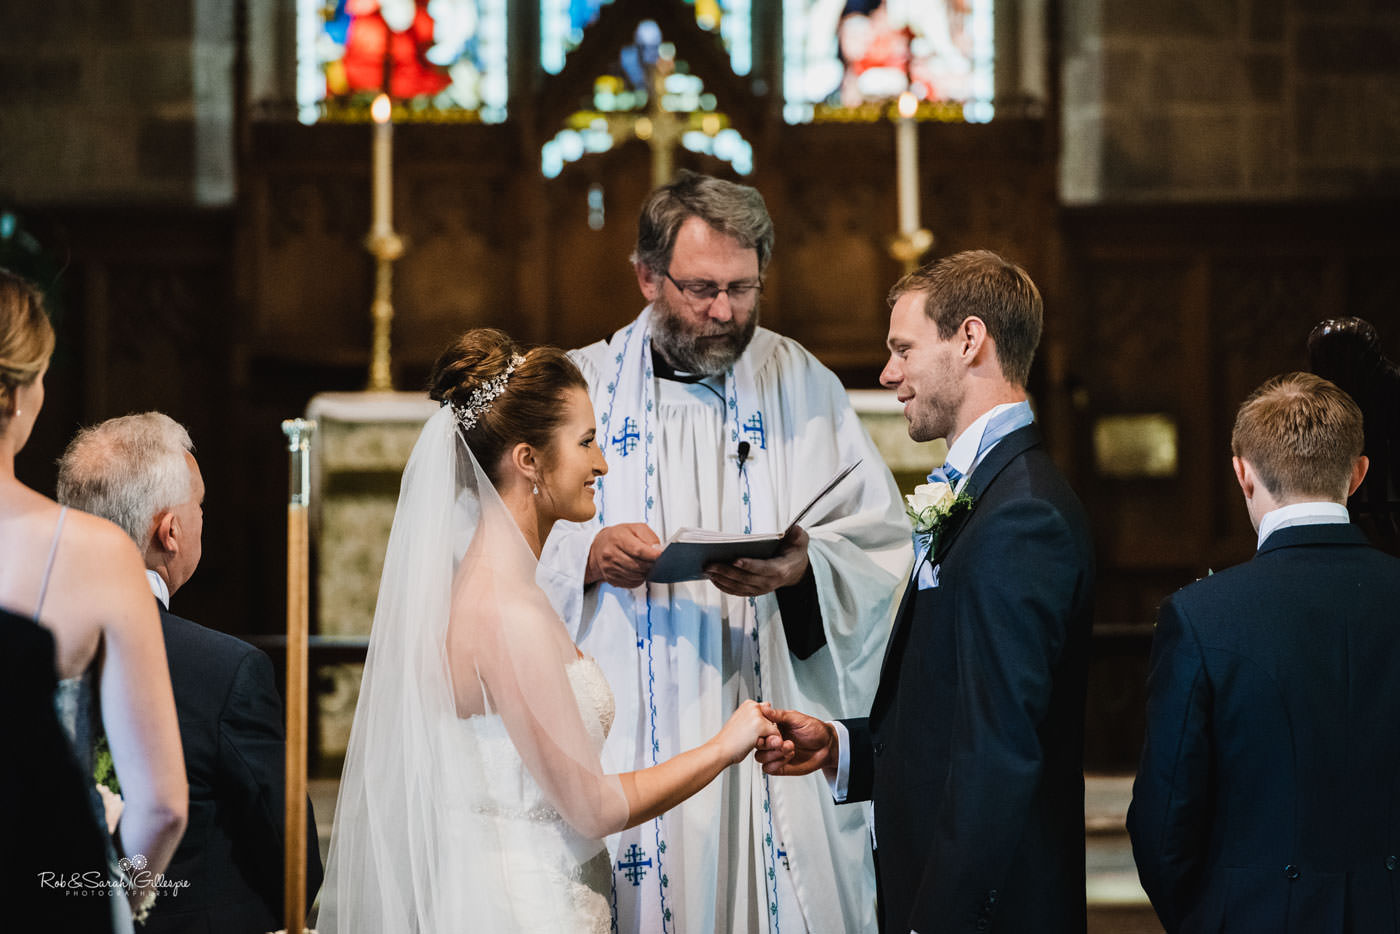 Wedding ceremony at St Peter's Church in Diddlebury, Shropshire